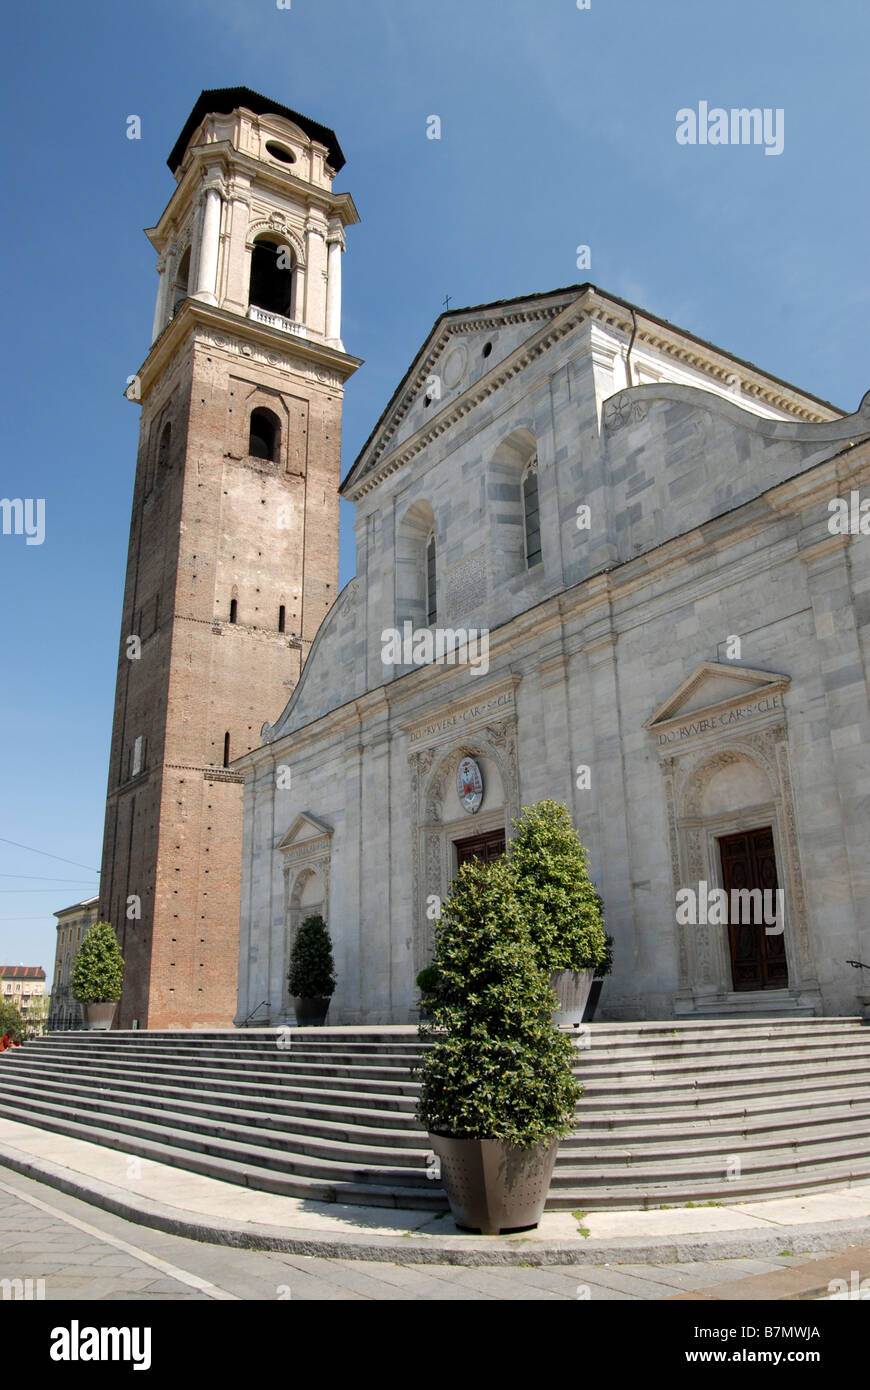 Duomo di San Giovanni, the cathedral and home of the Turin Shroud, Turin, Piedmont, Italy. - Stock Image